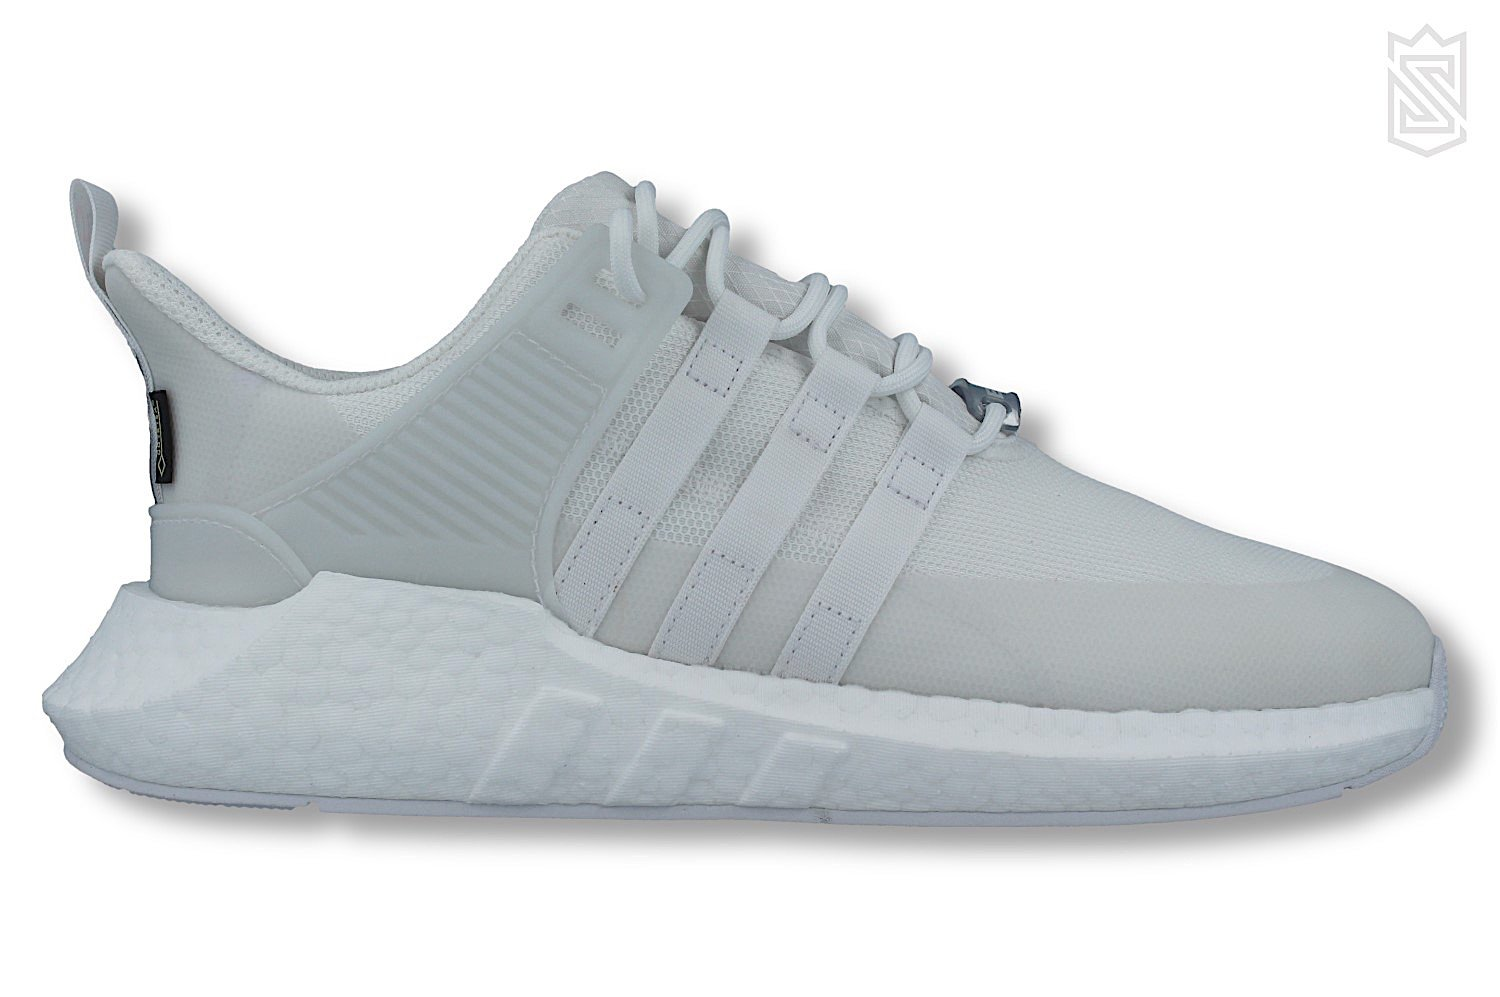 newest collection 0b5de 01073 Adidas EQT Support 9317  Adidas EQT Support 9317 sale